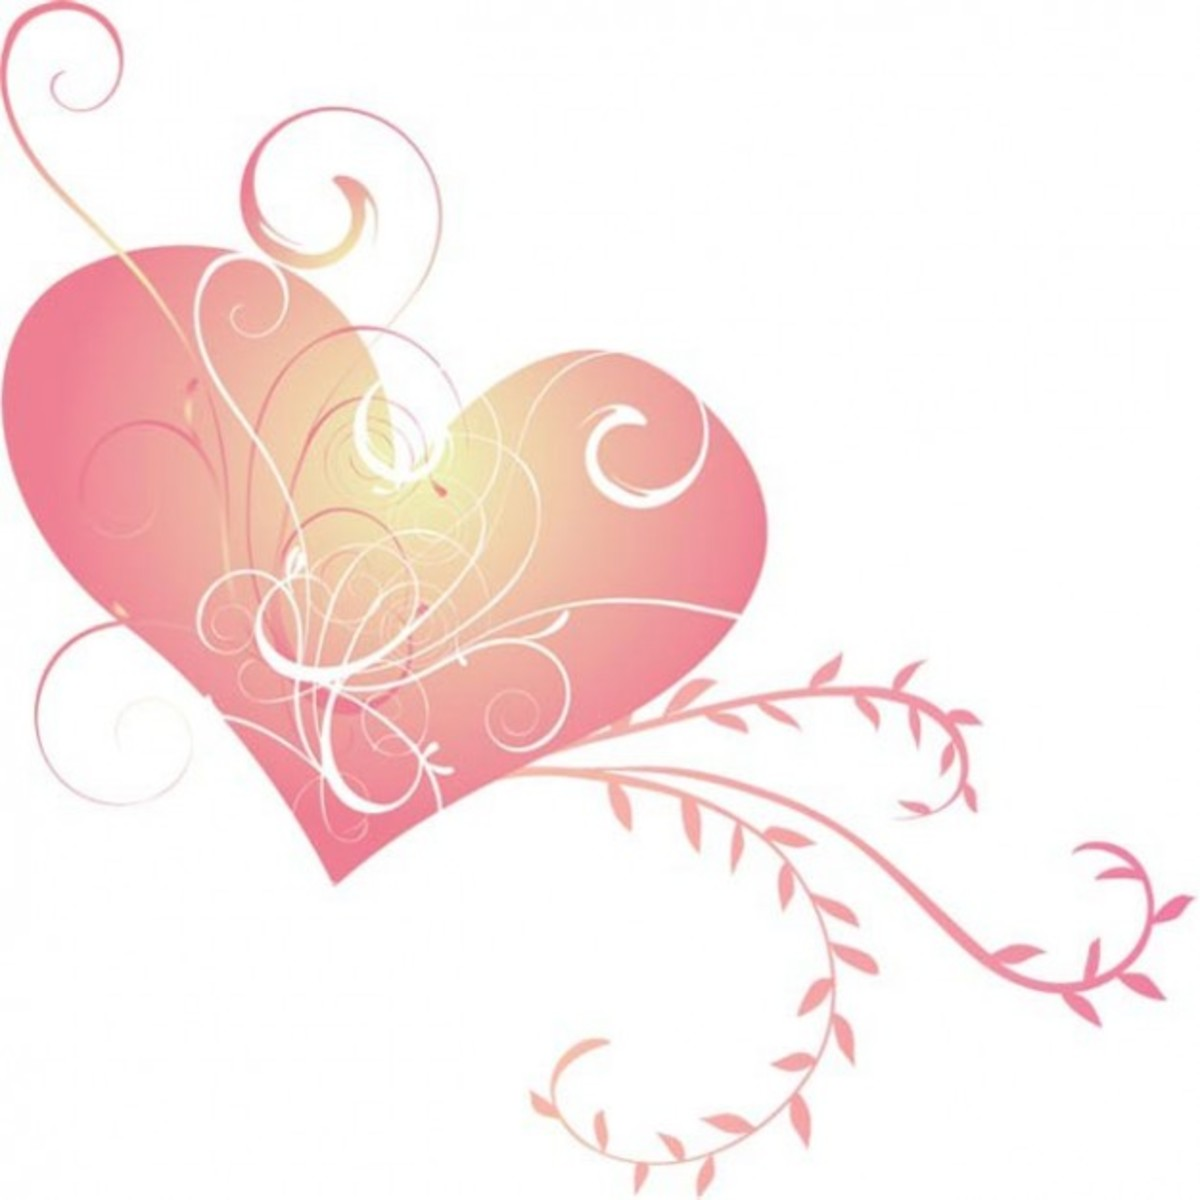 Pink Heart with Scrolling Image